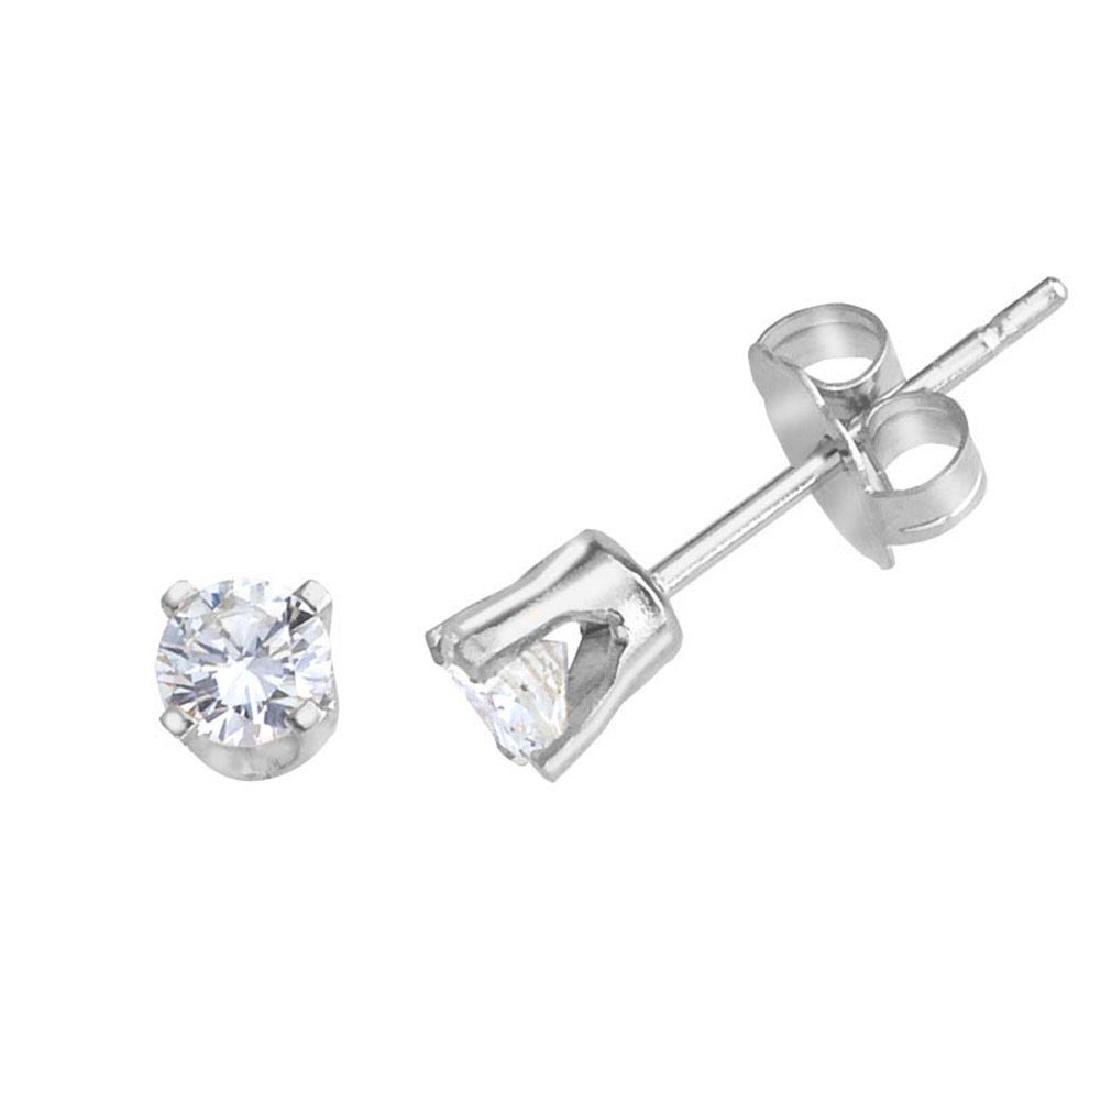 Certified 14k White Gold 0.25 Ct Diamond Stud Earrings